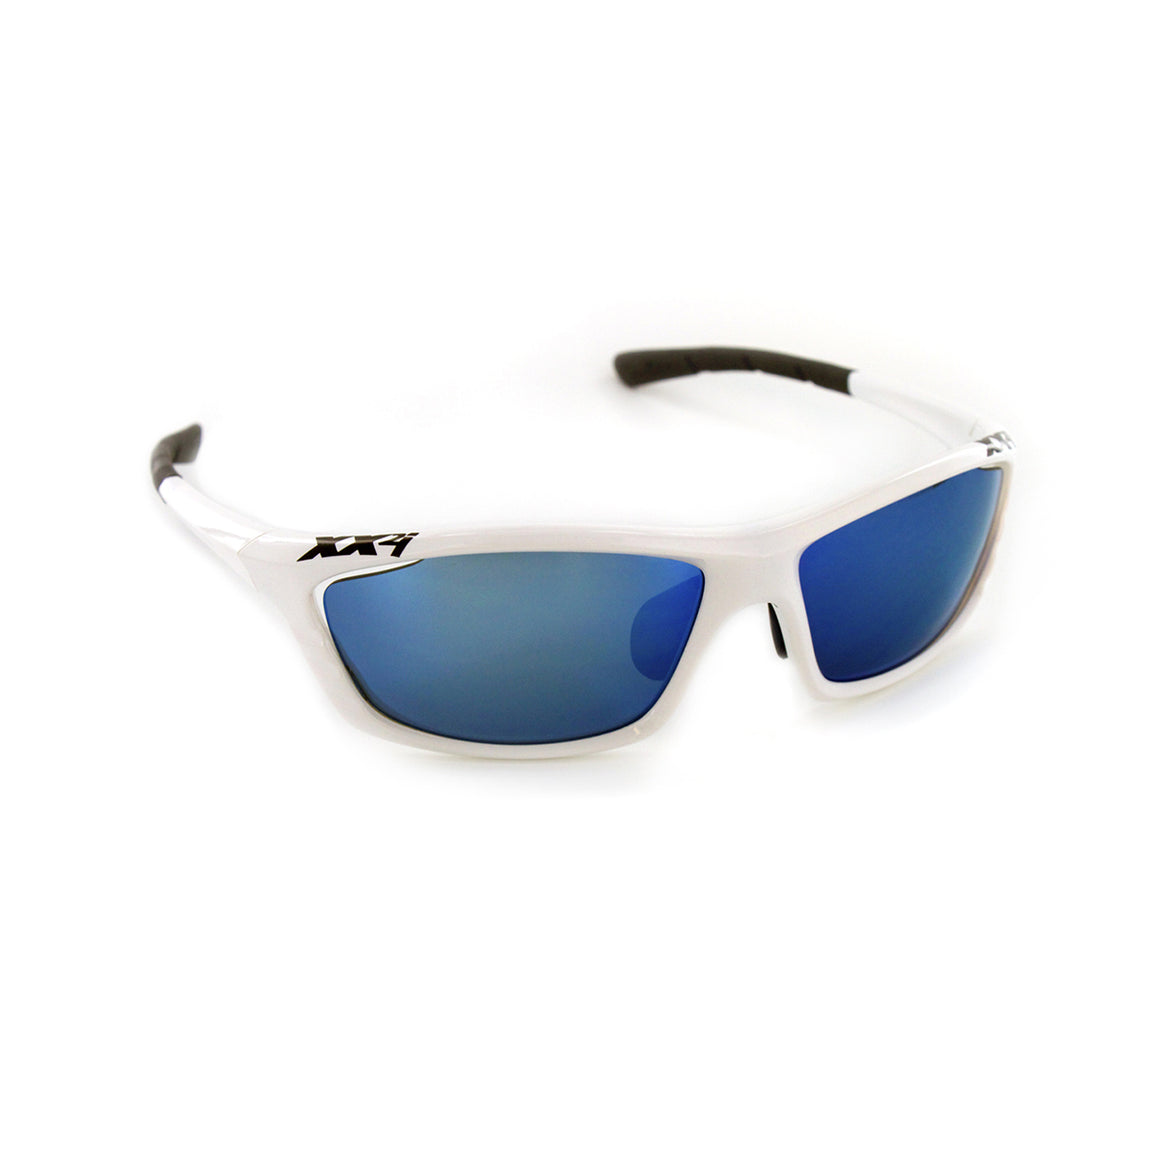 USA1 Polarized Performance Sunglasses